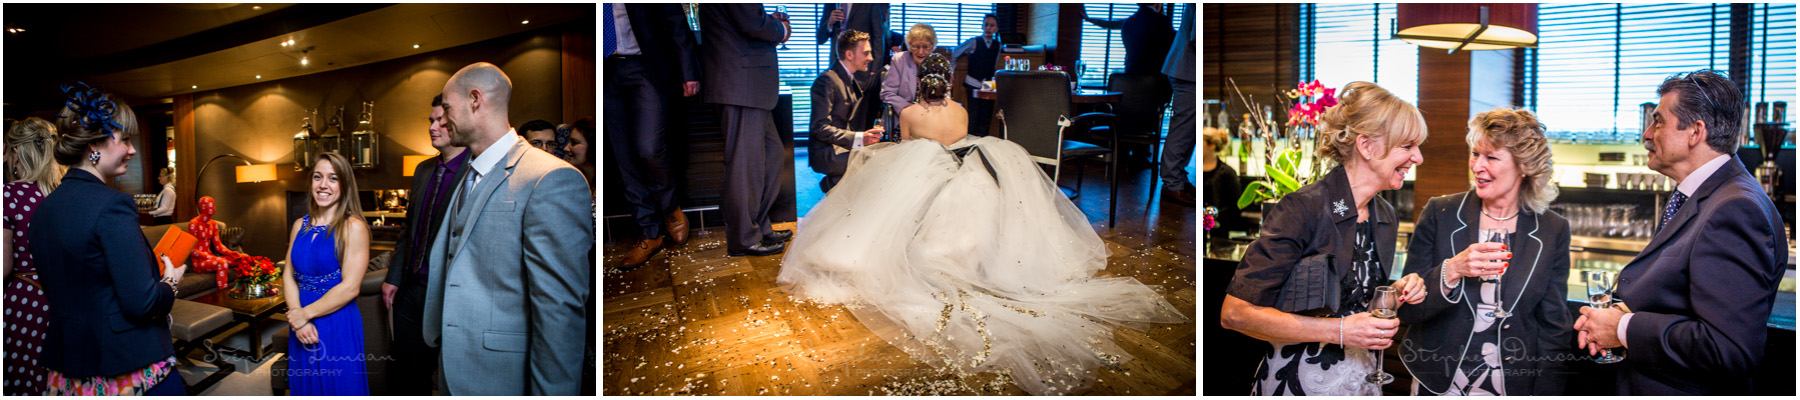 The Aviator wedding photography candid reception photos